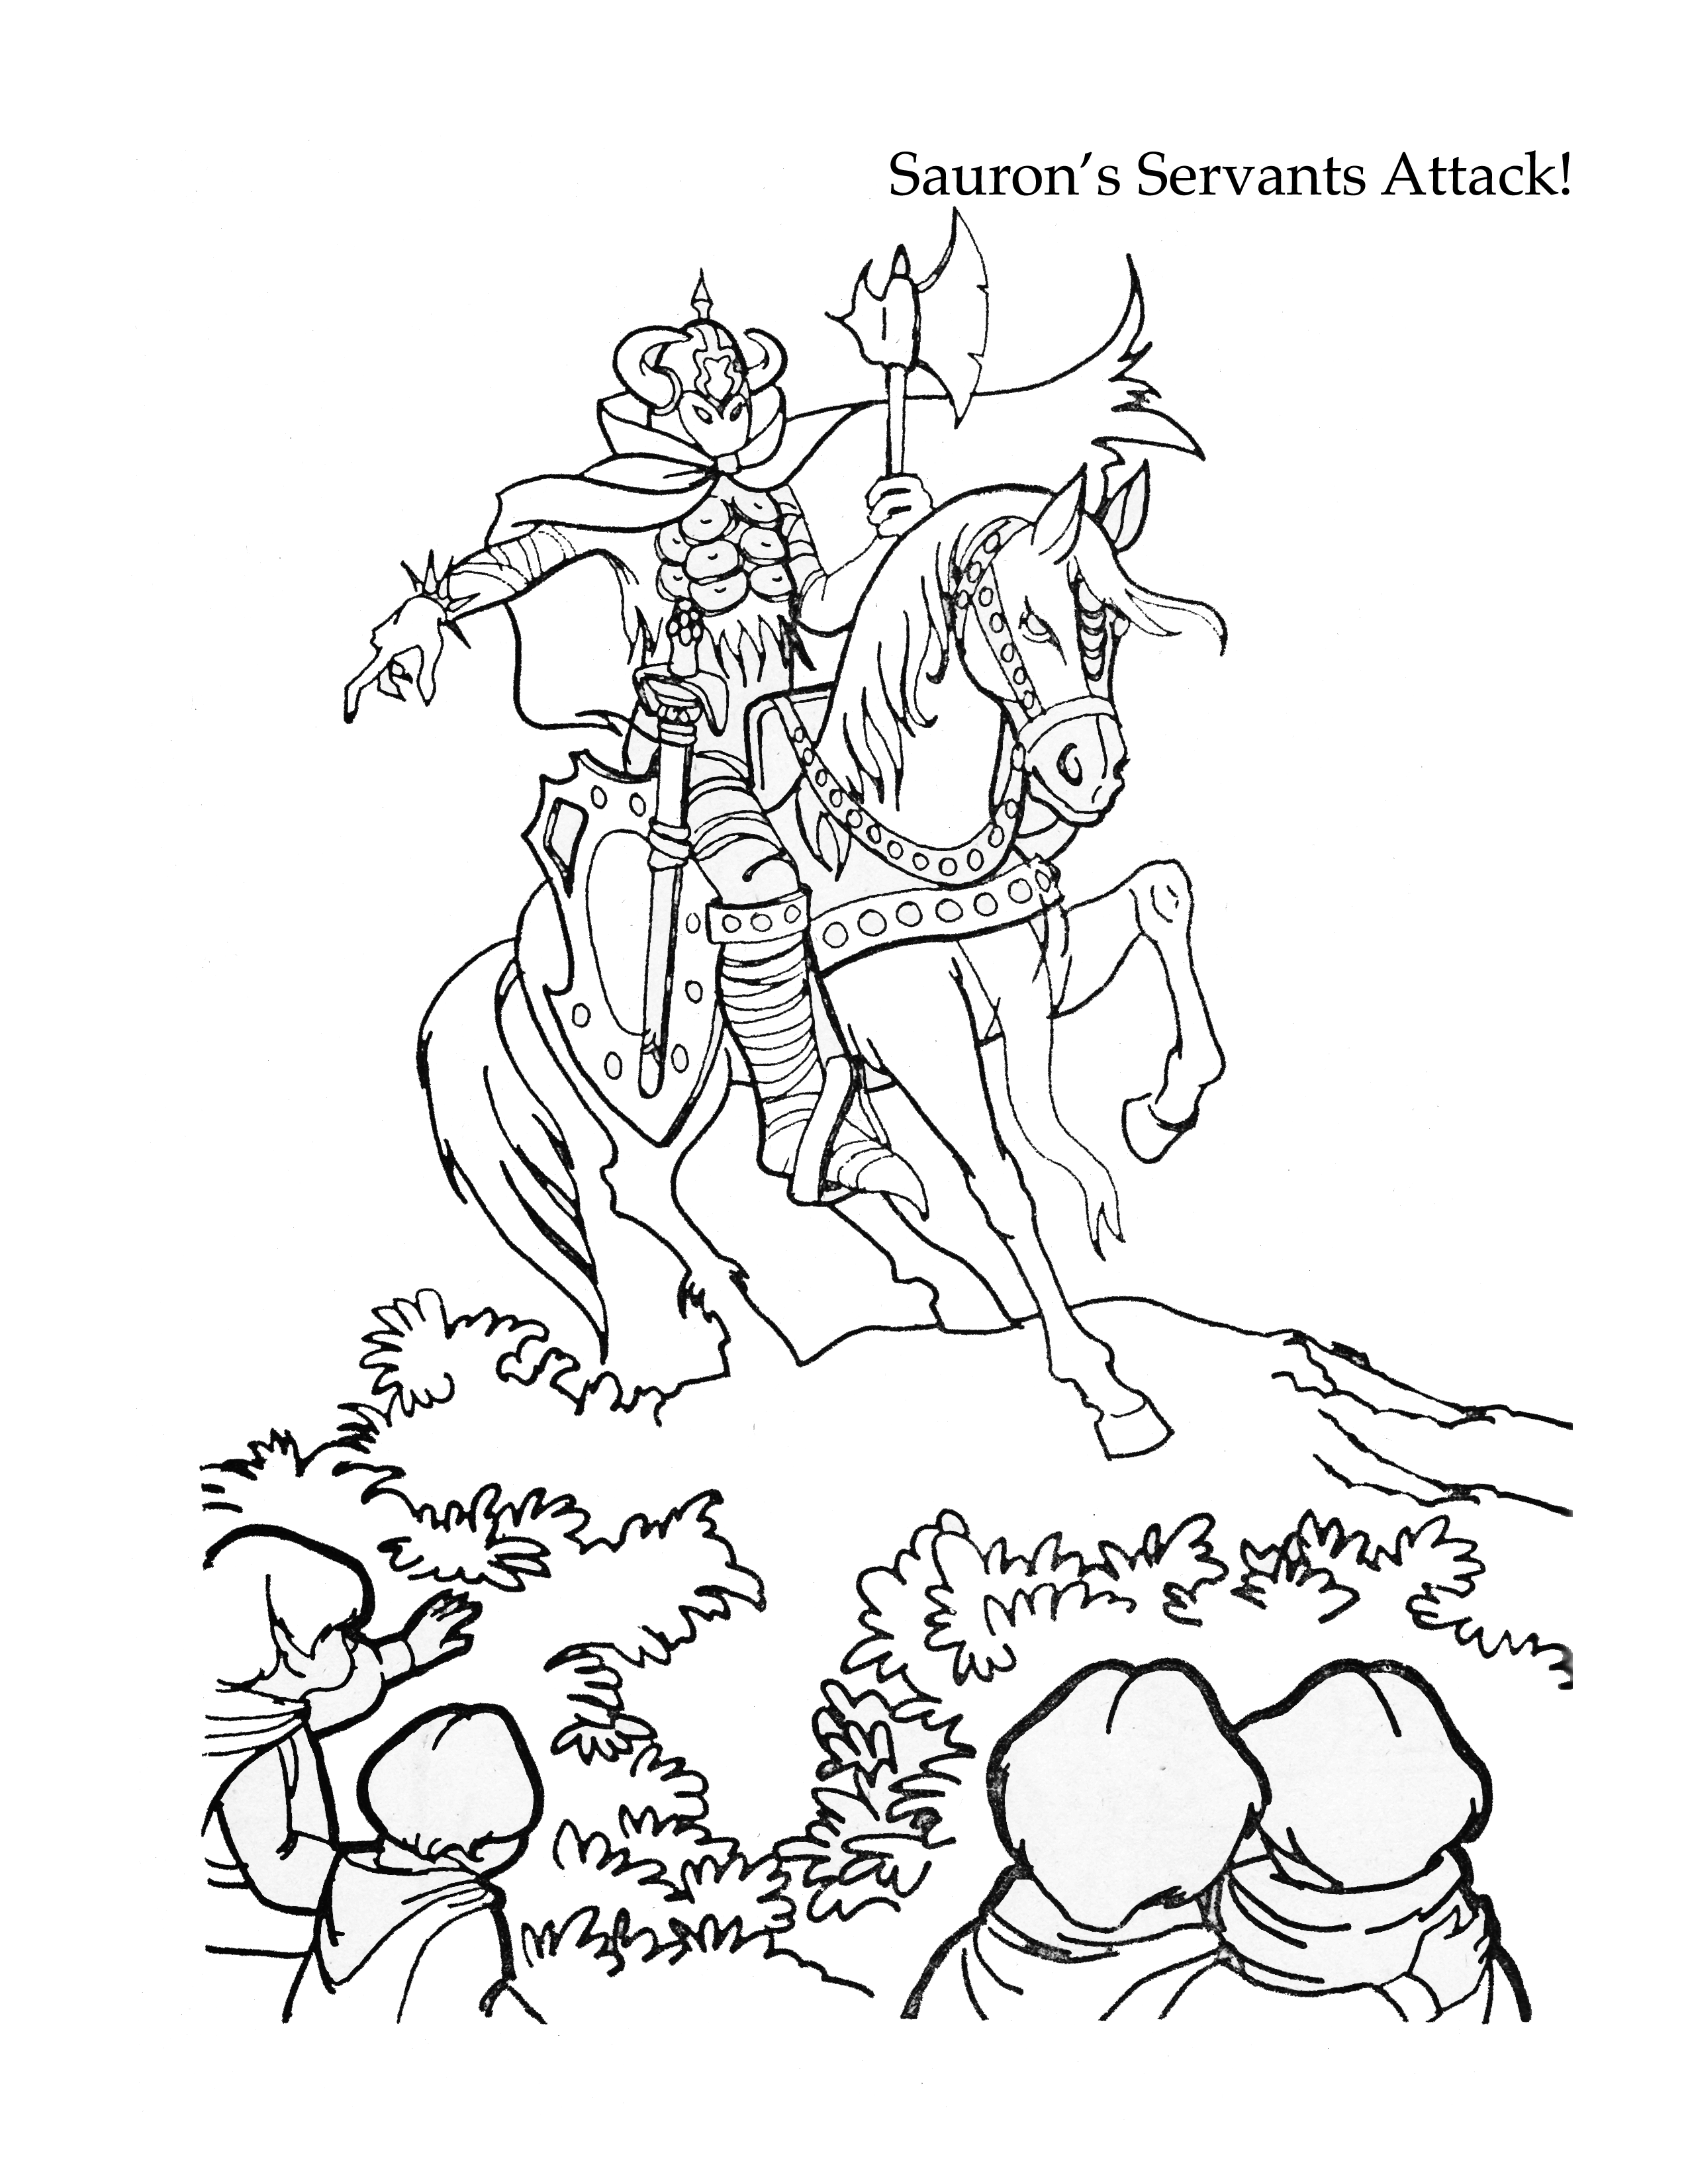 A Coloring Page From The Lord Of The Rings Coloring Book Whitman 1979 Cleaned Up A Bad Scan And Re Vintage Coloring Books Earth Coloring Pages Coloring Books